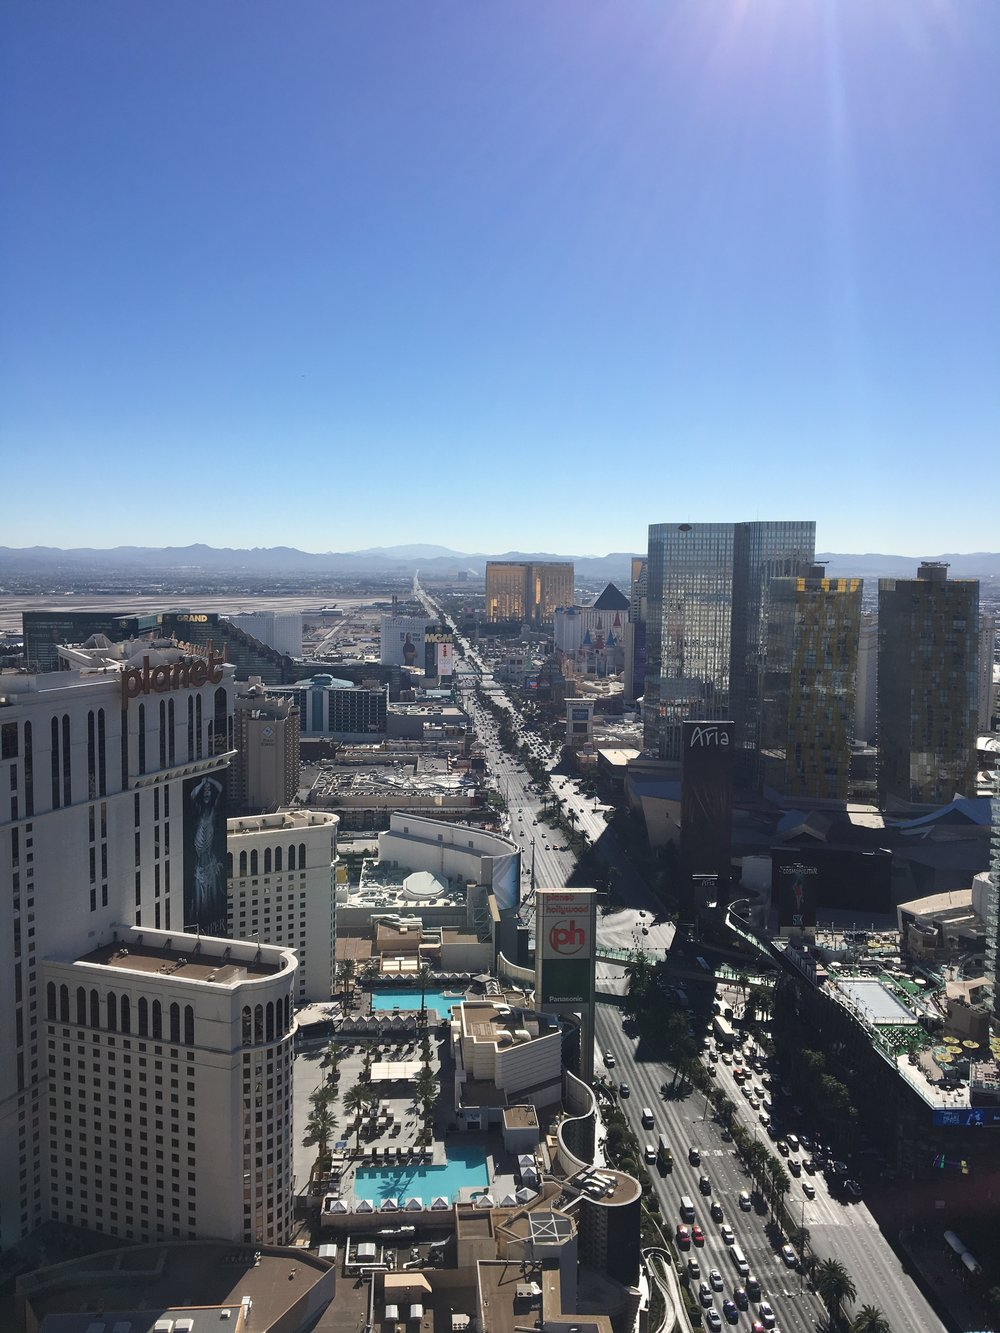 View from the top of the stratosphere! It was a perfectly sunny last day that we were here last year and hoping for the same weather again this year :)